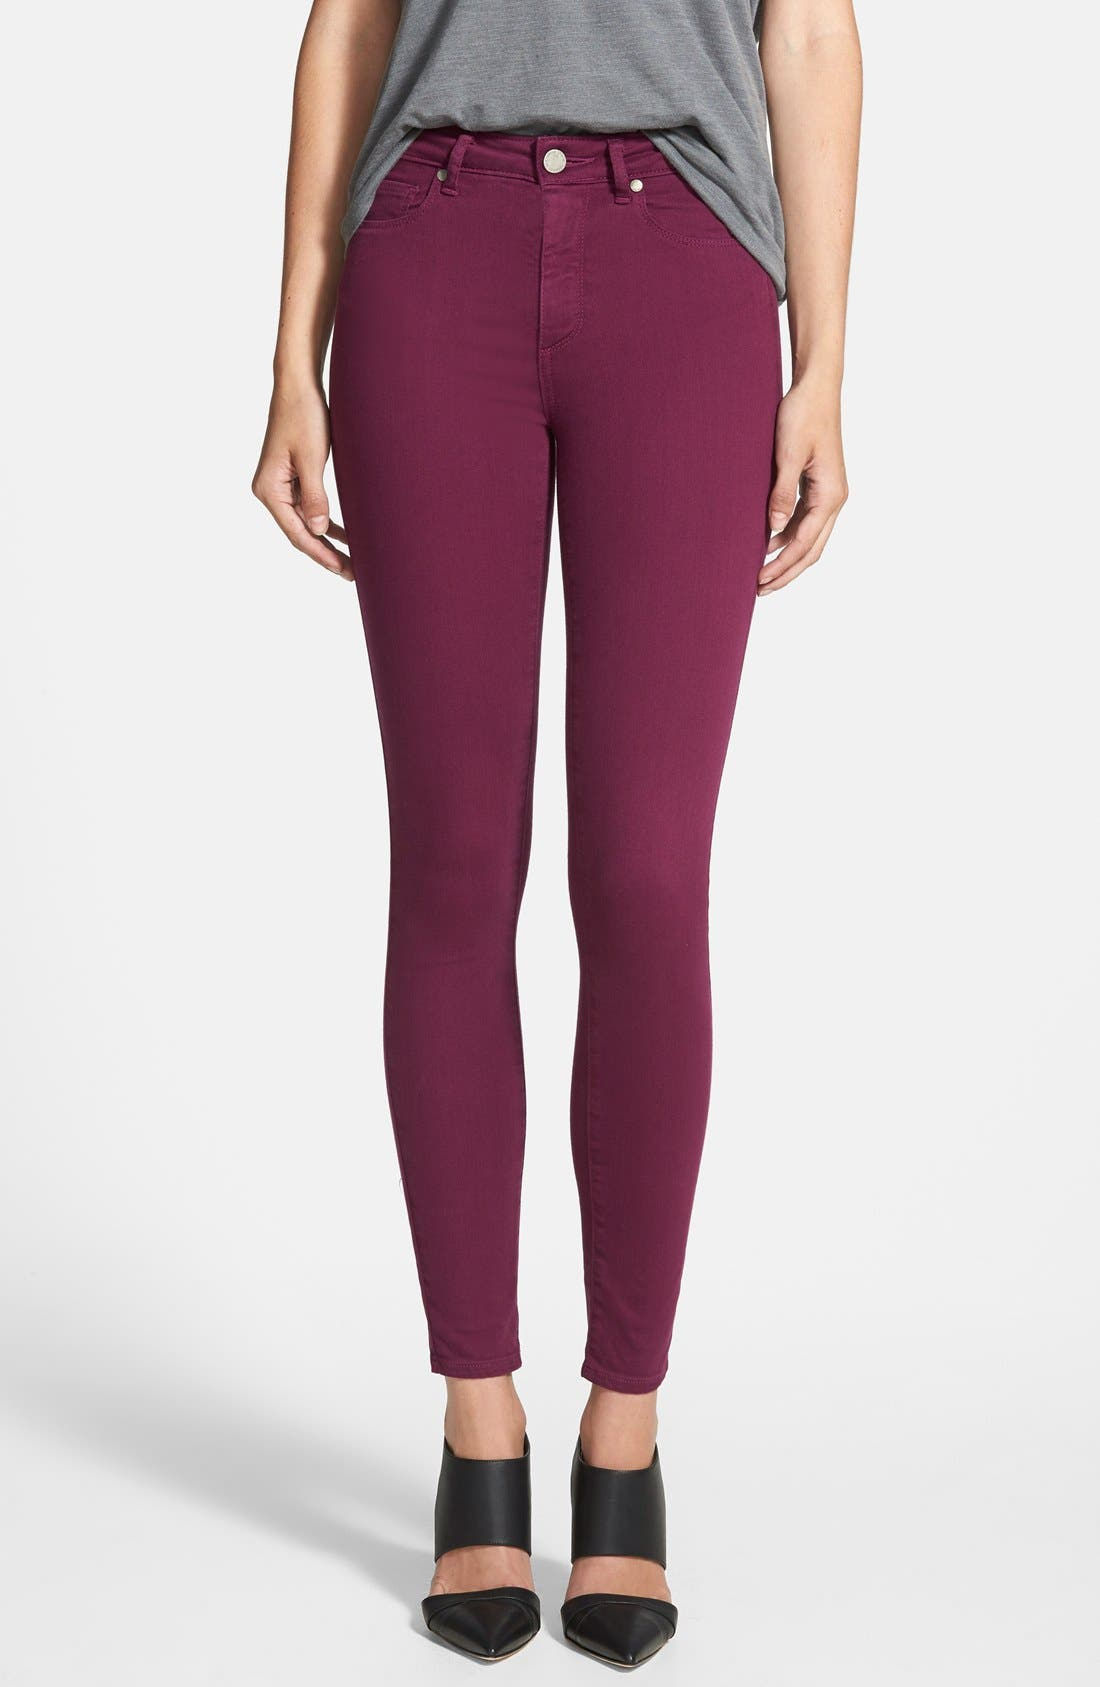 Main Image - Paige Denim 'Hoxton' Ultra Skinny Jeans (Passion Plum)